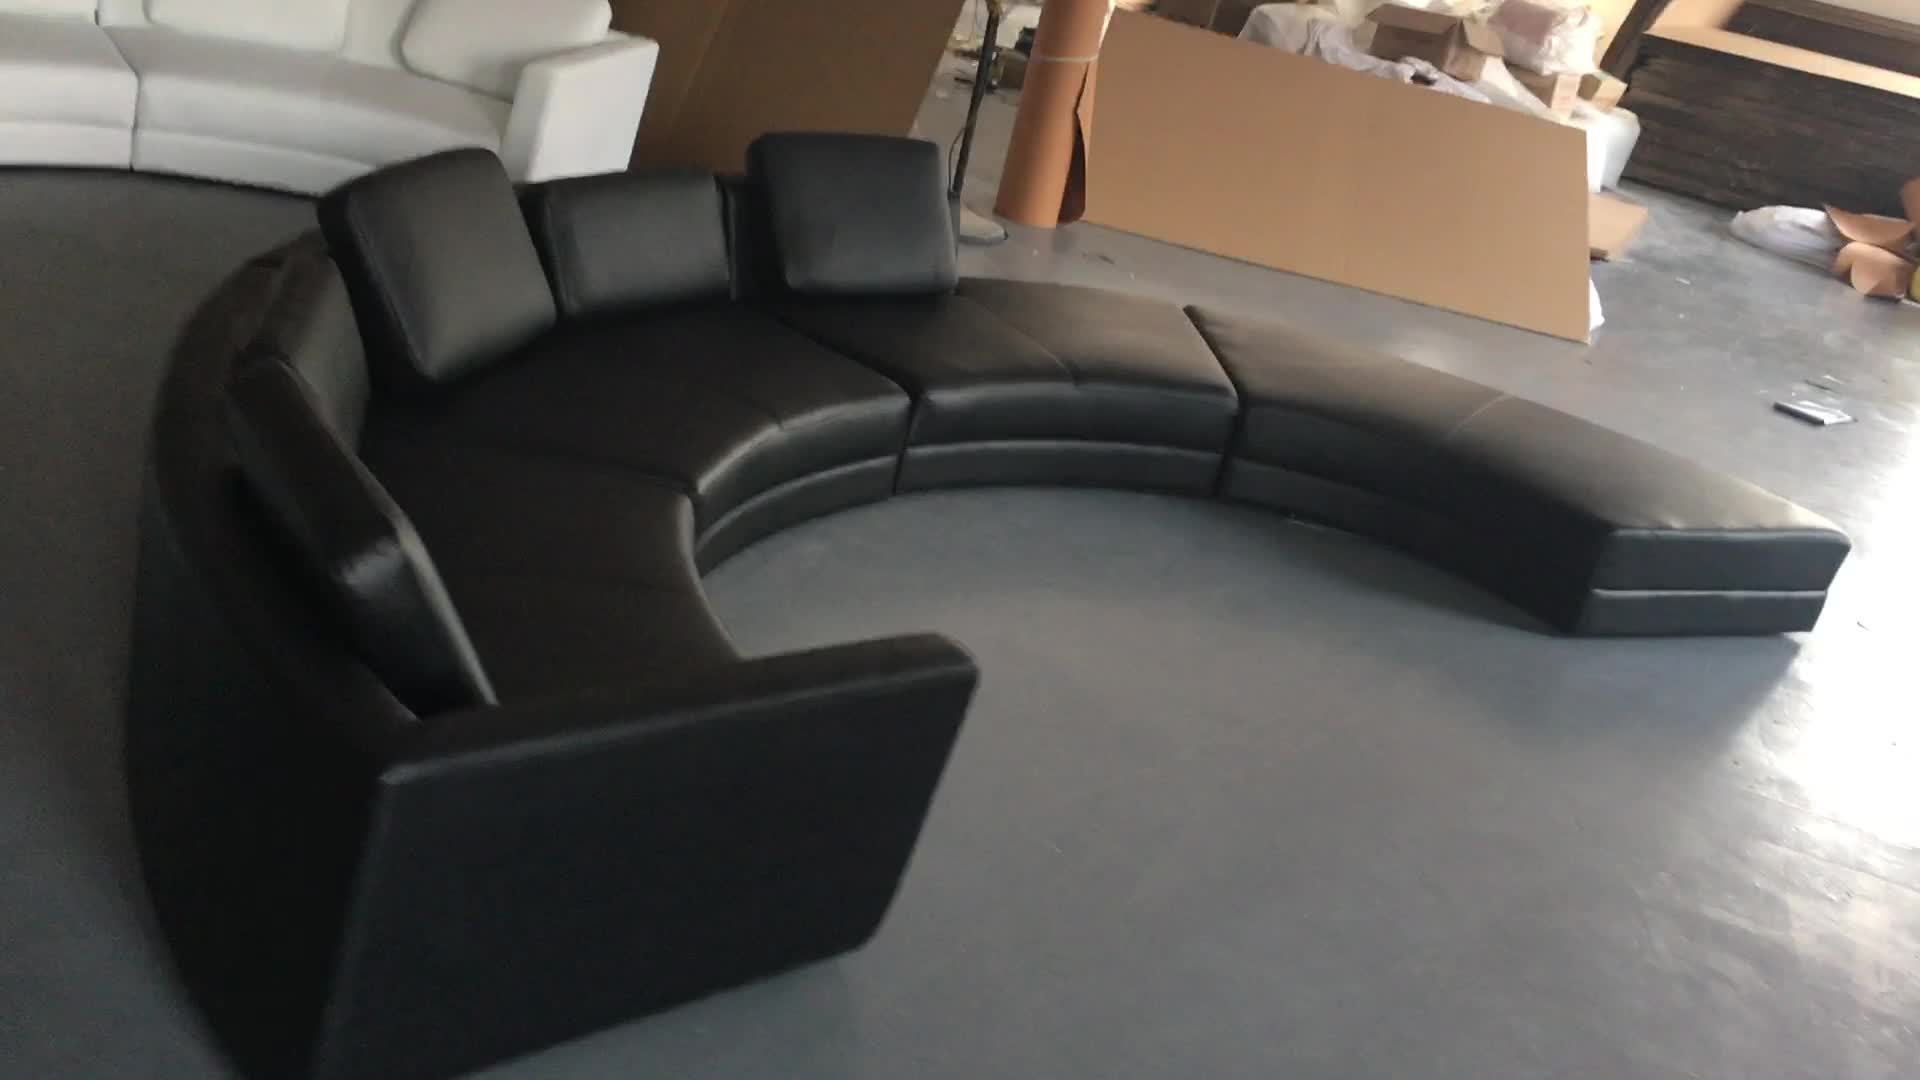 Curved Design Furniture Leather Sectional Round Sofa A004